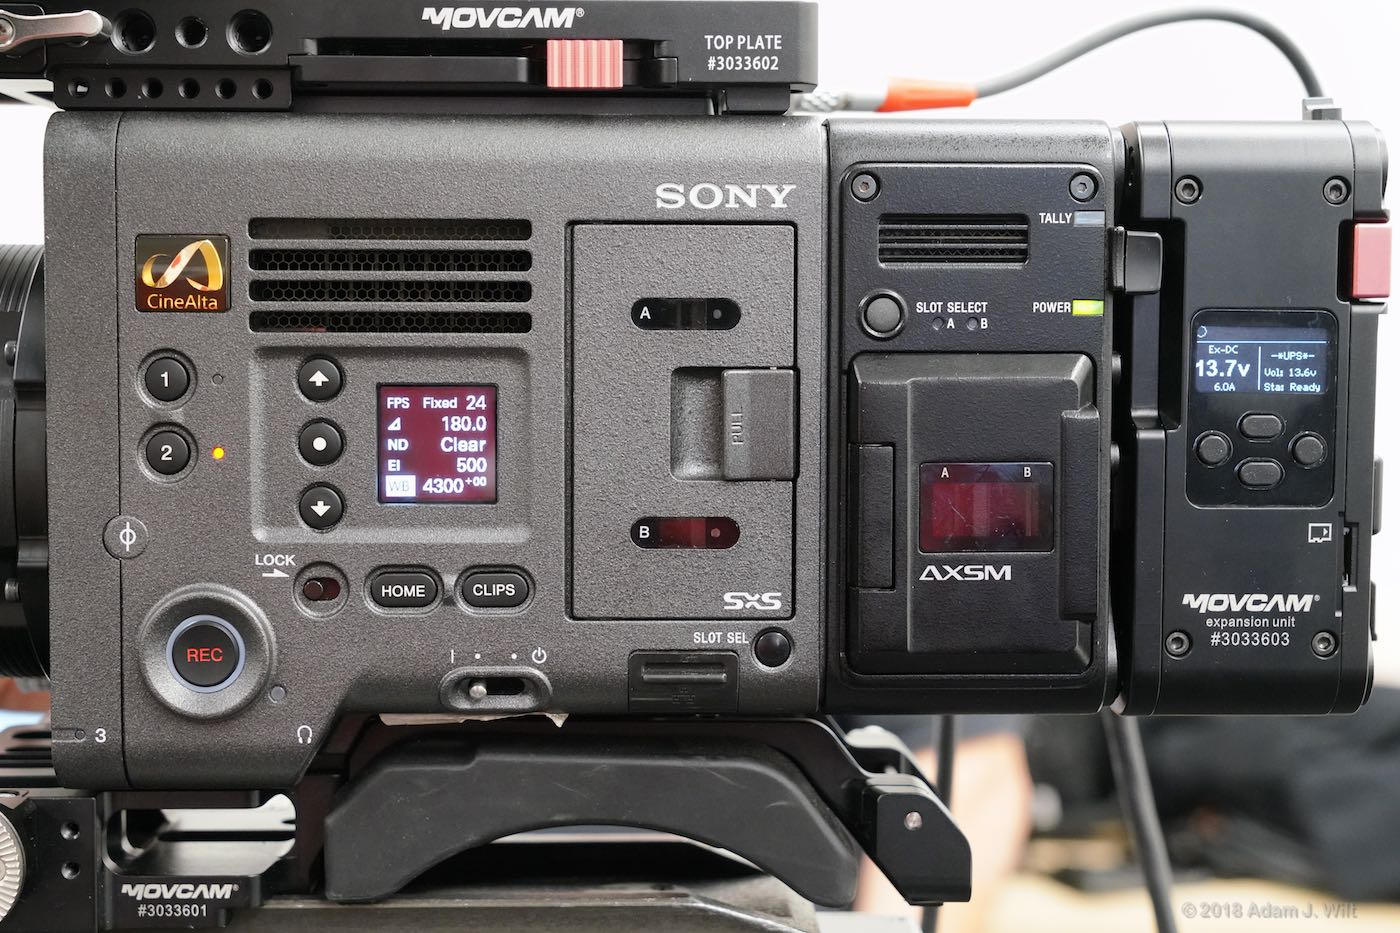 Operator's side of the Sony Venice, raw recorder, and MOVCAM expansion unit.